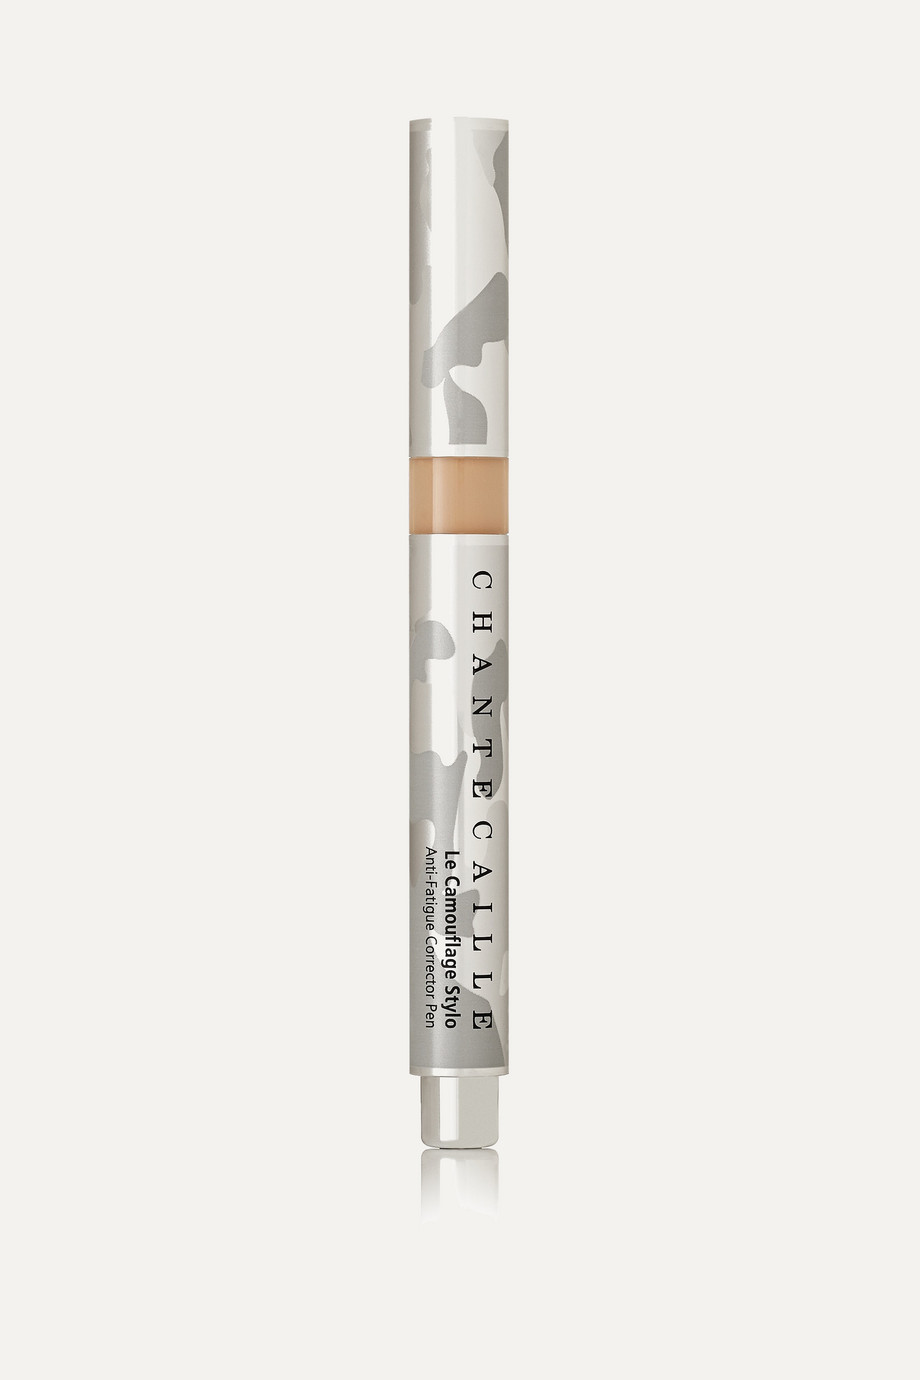 Chantecaille Le Camouflage Stylo - 3, 1.8ml